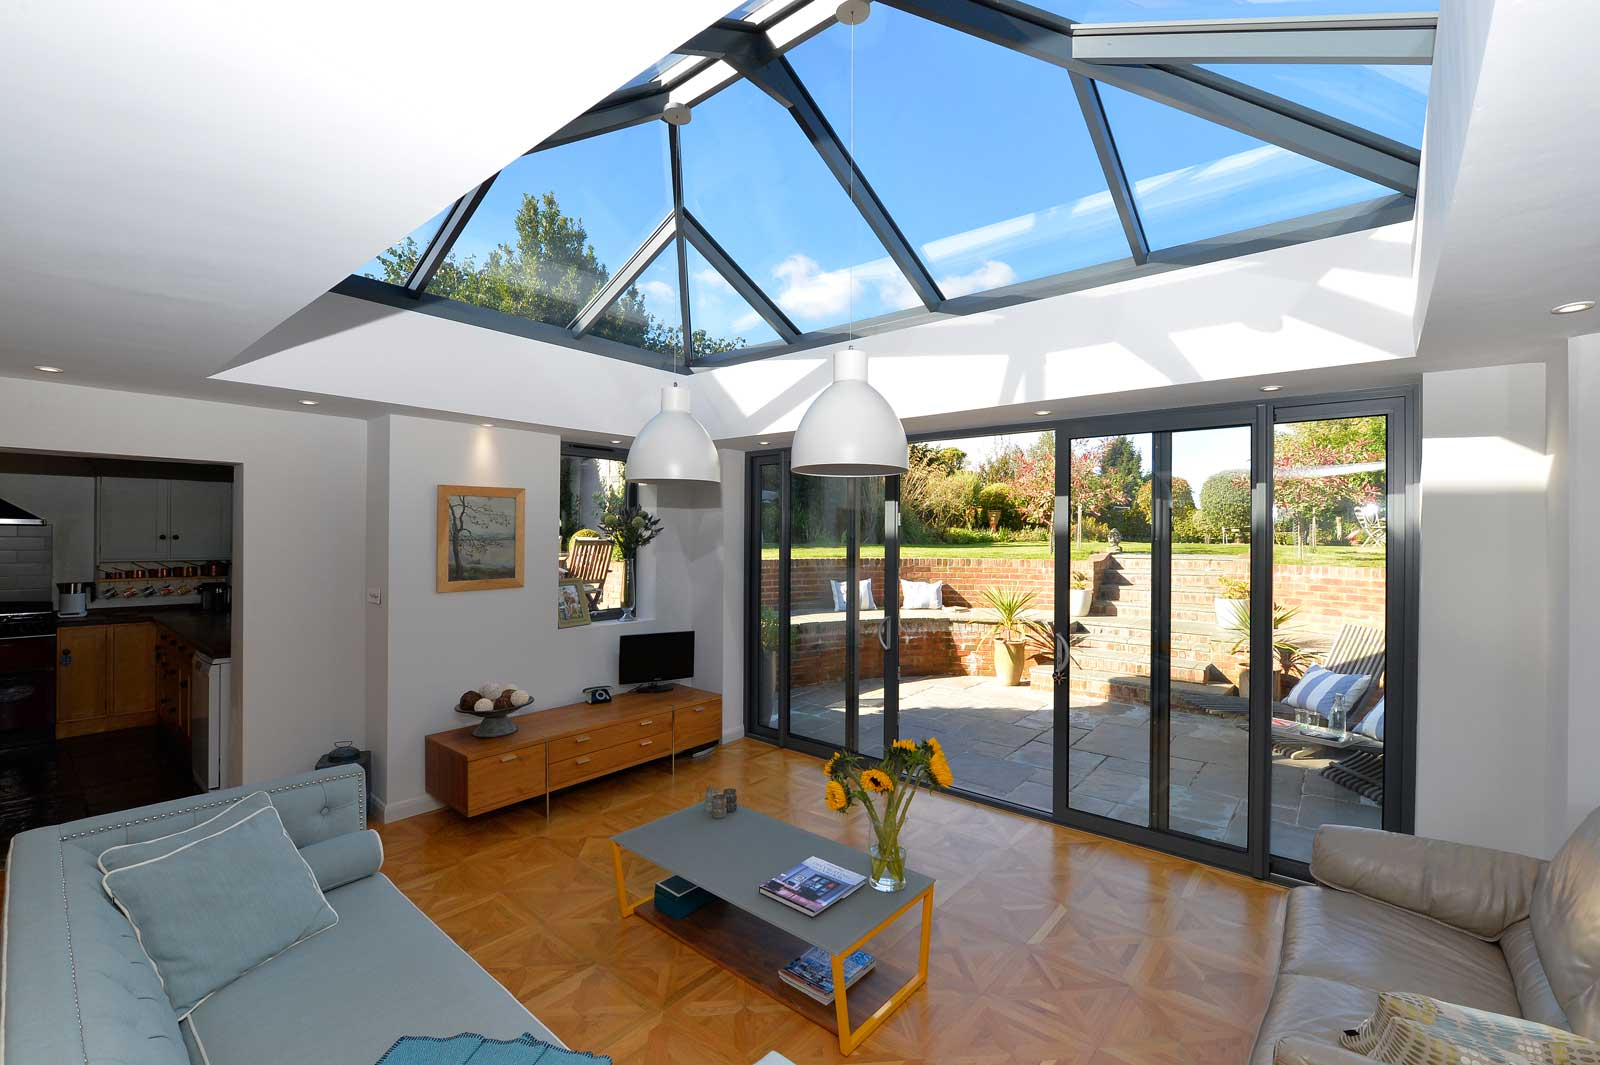 Double Glazing sky light in conservatory